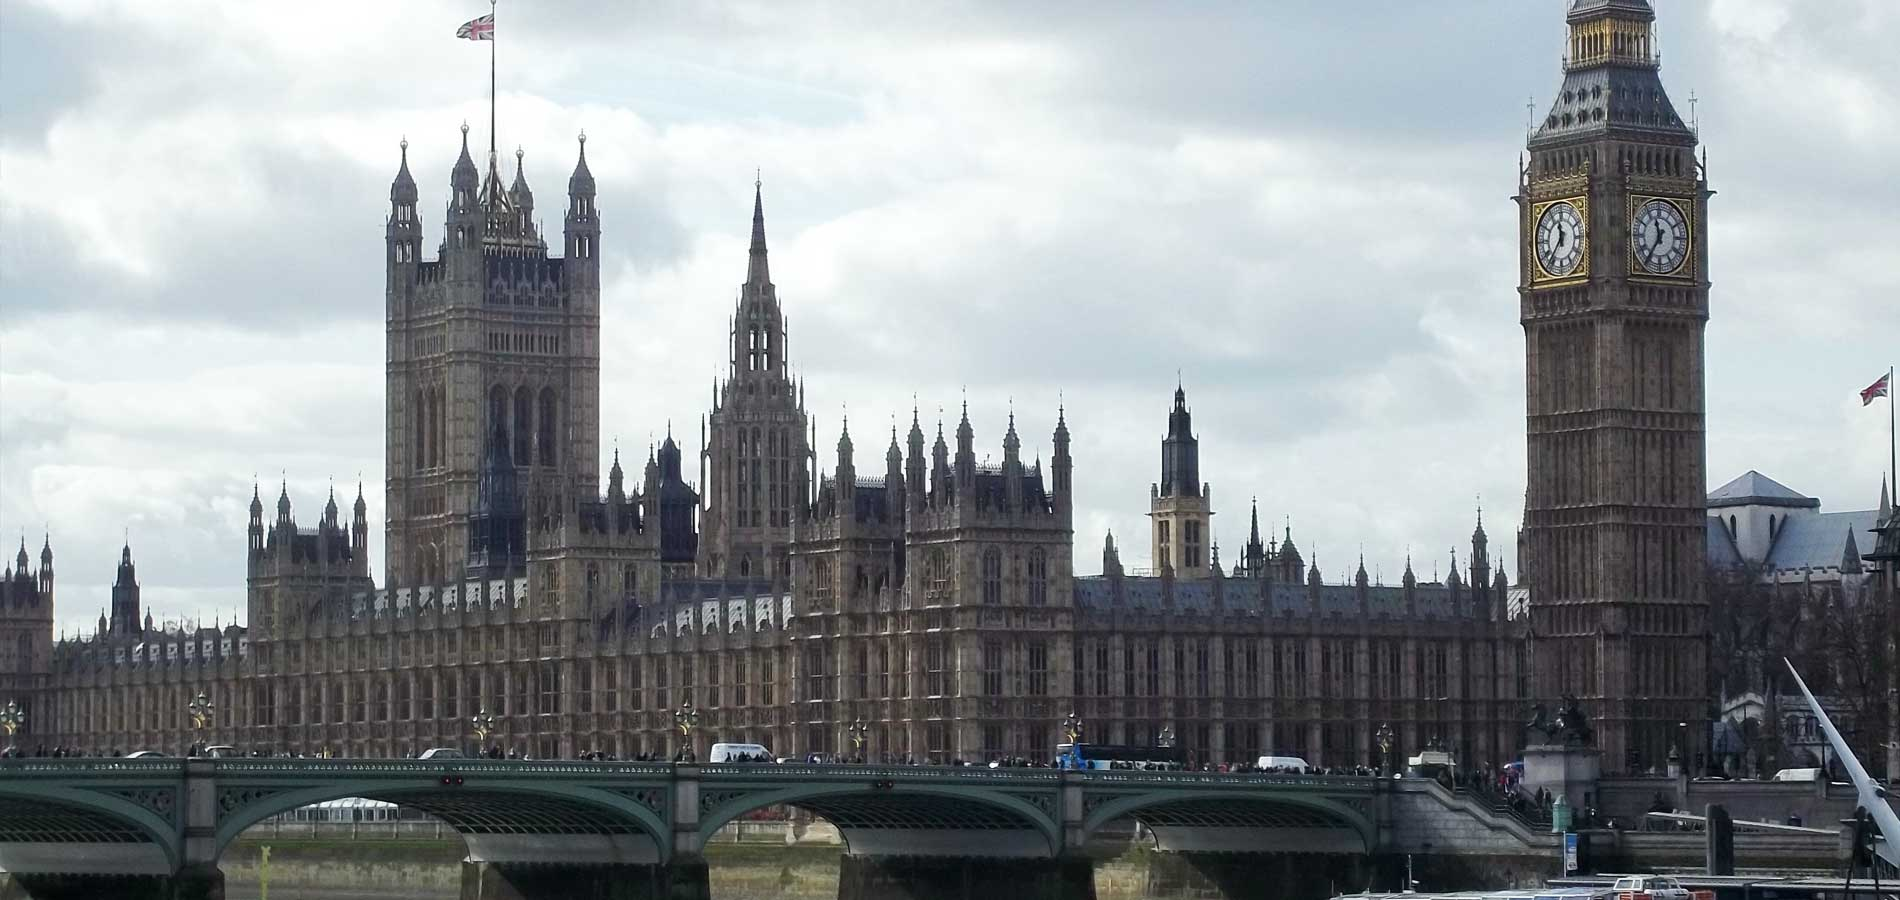 Parliament and Elizabeth Tower